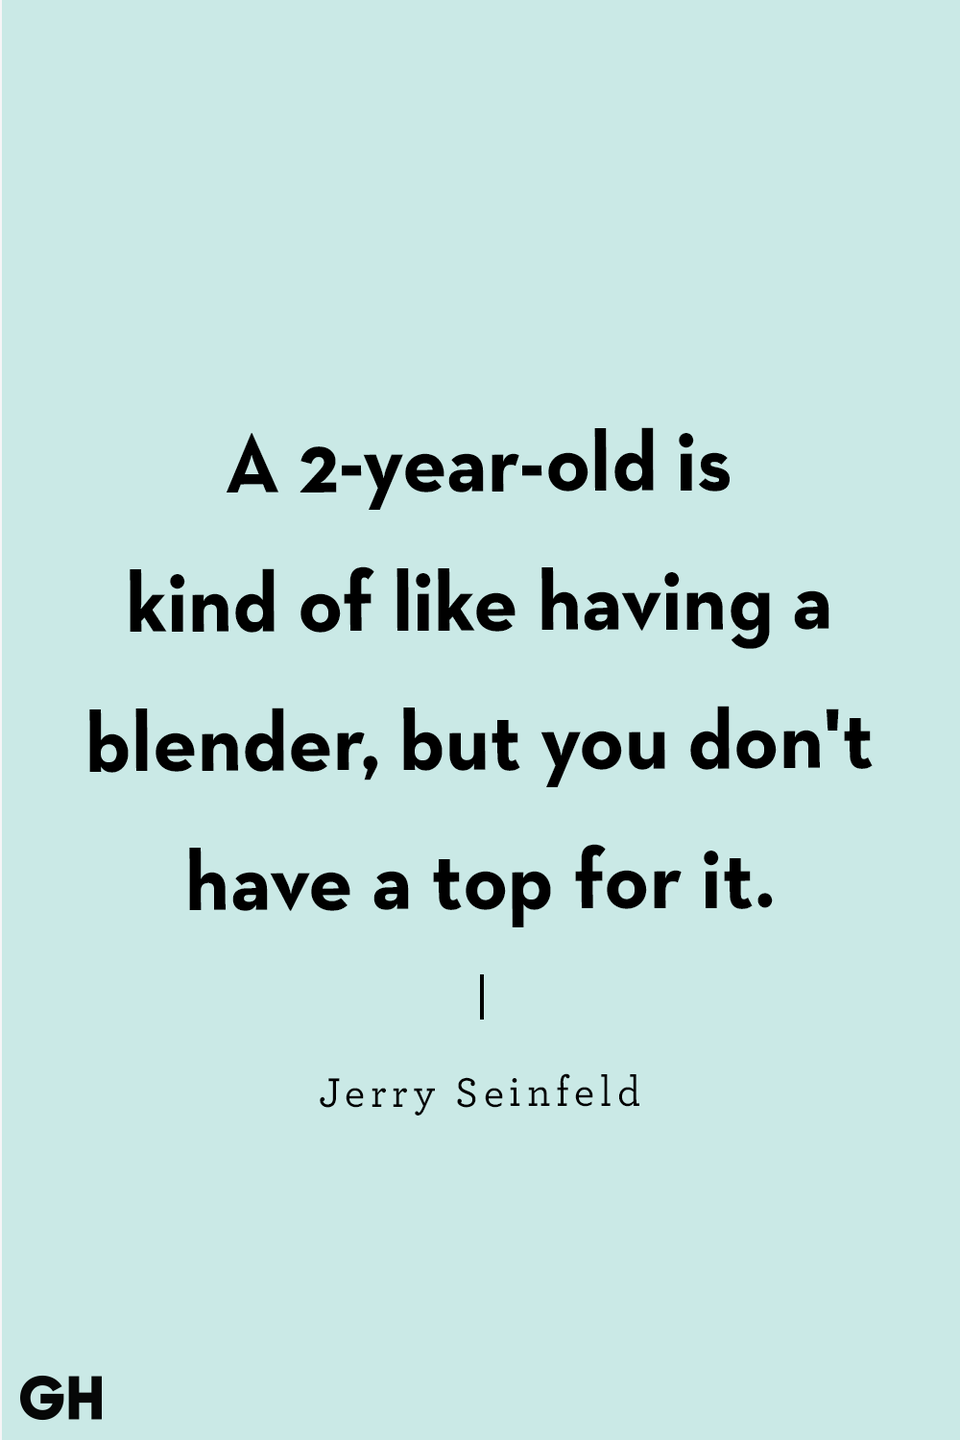 <p>A 2-year-old is kind of like having a blender, but you don't have a top for it.</p>